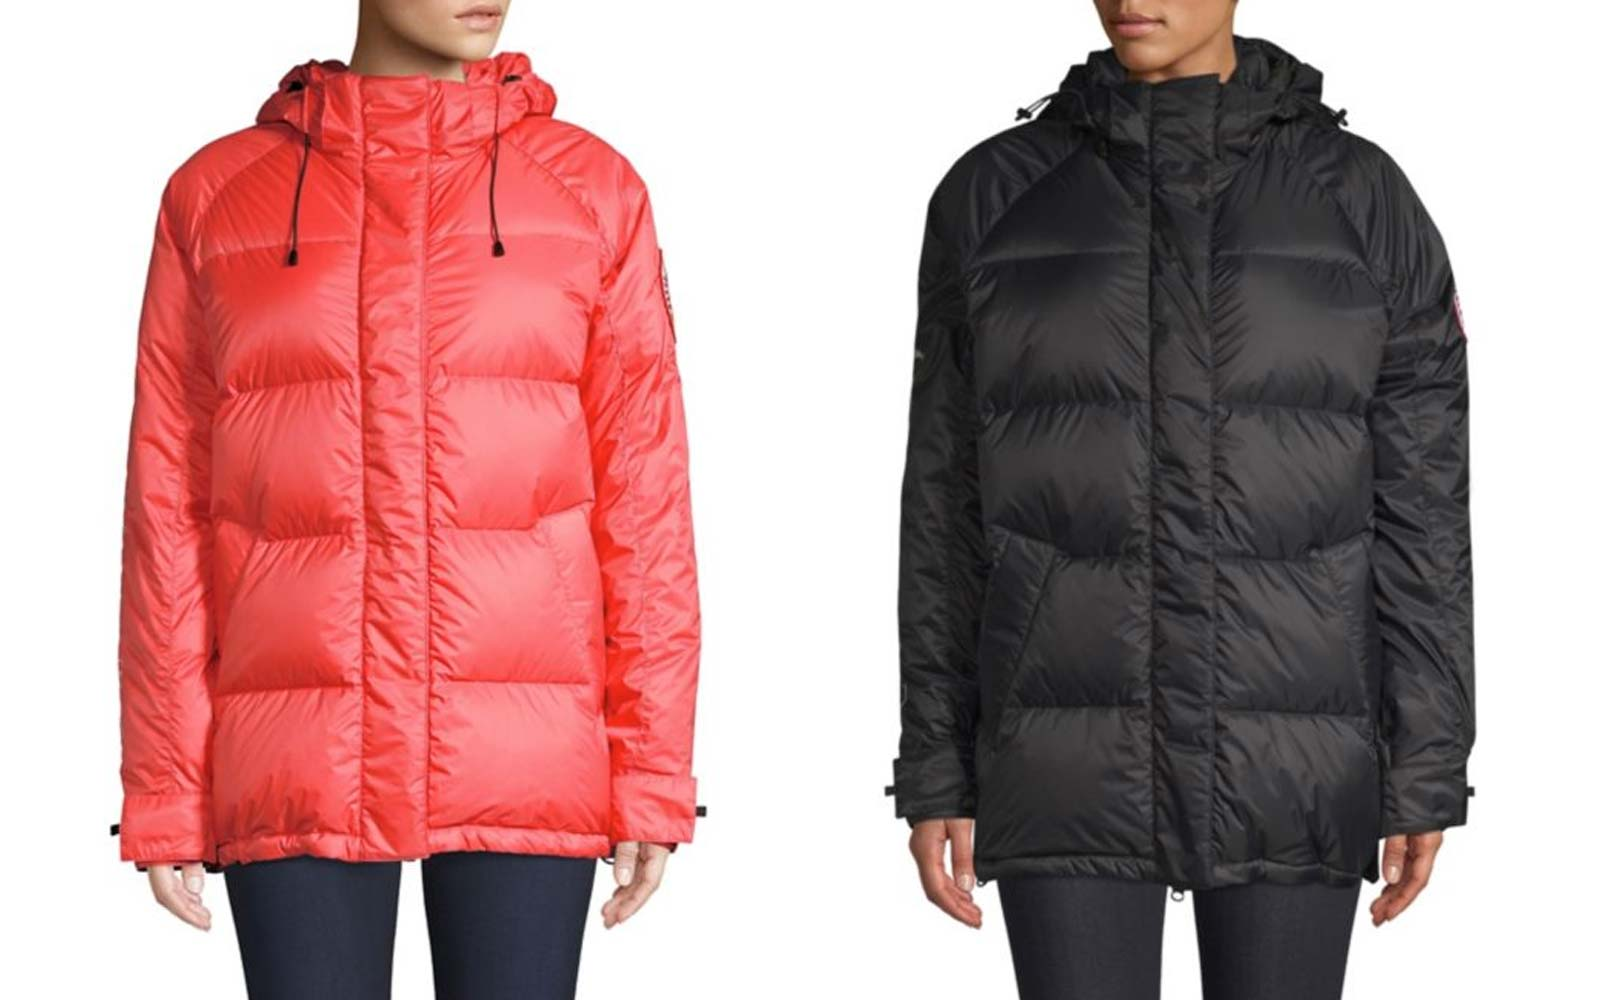 I Tried Canada Goose's Newest Jacket and I'll Never Buy Another Winter Coat Again